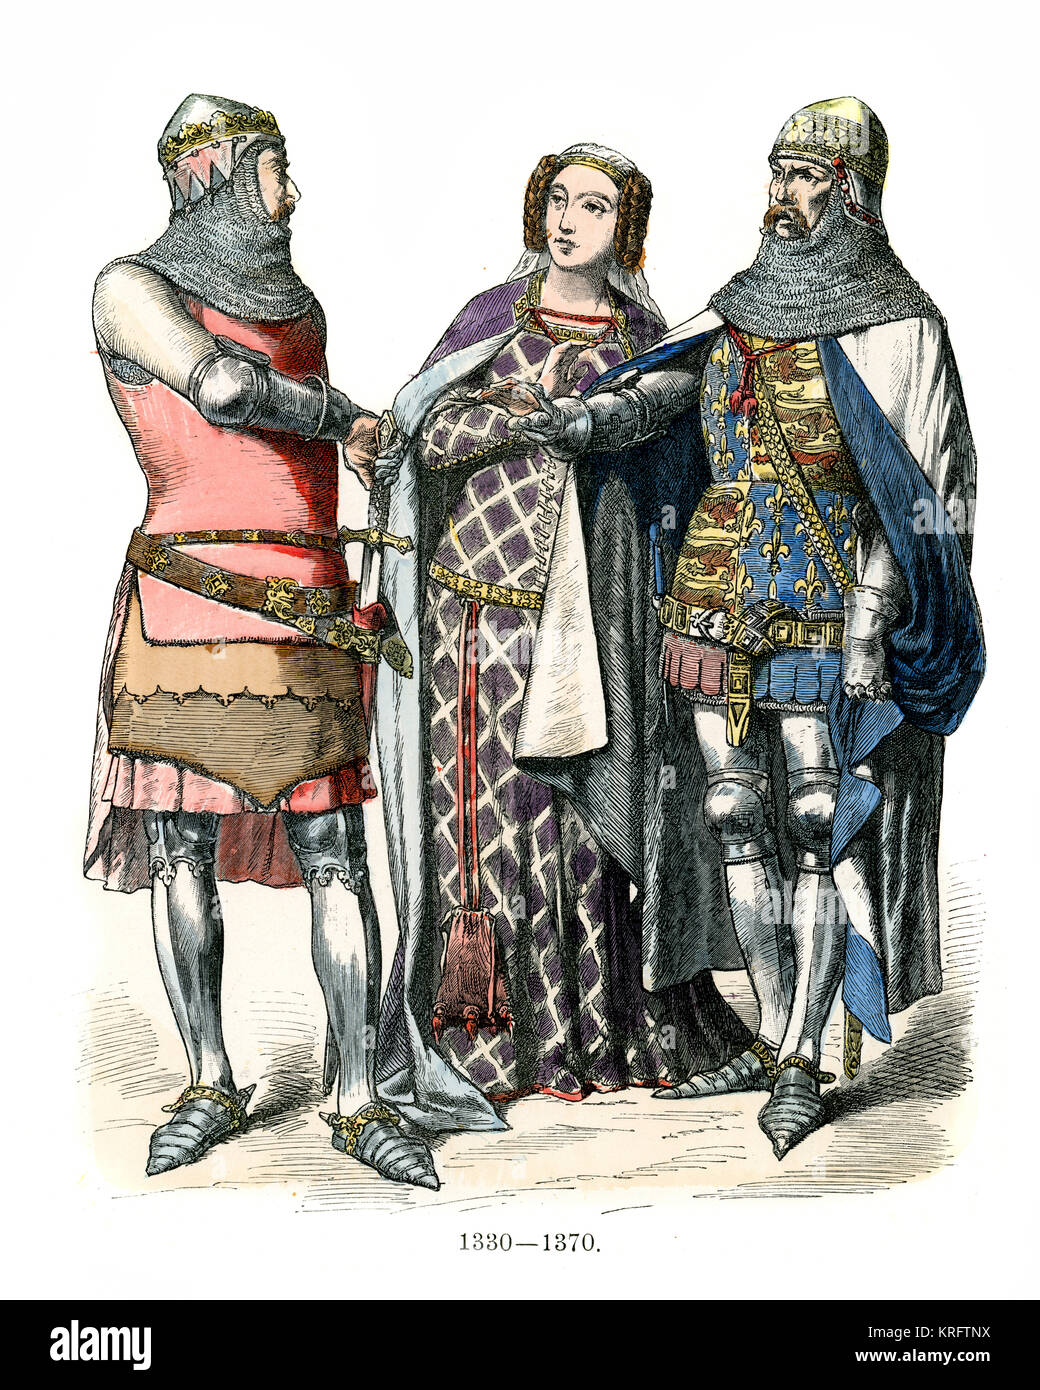 Vintage engraving of English Knights and lady of the 14th Century - Stock Image